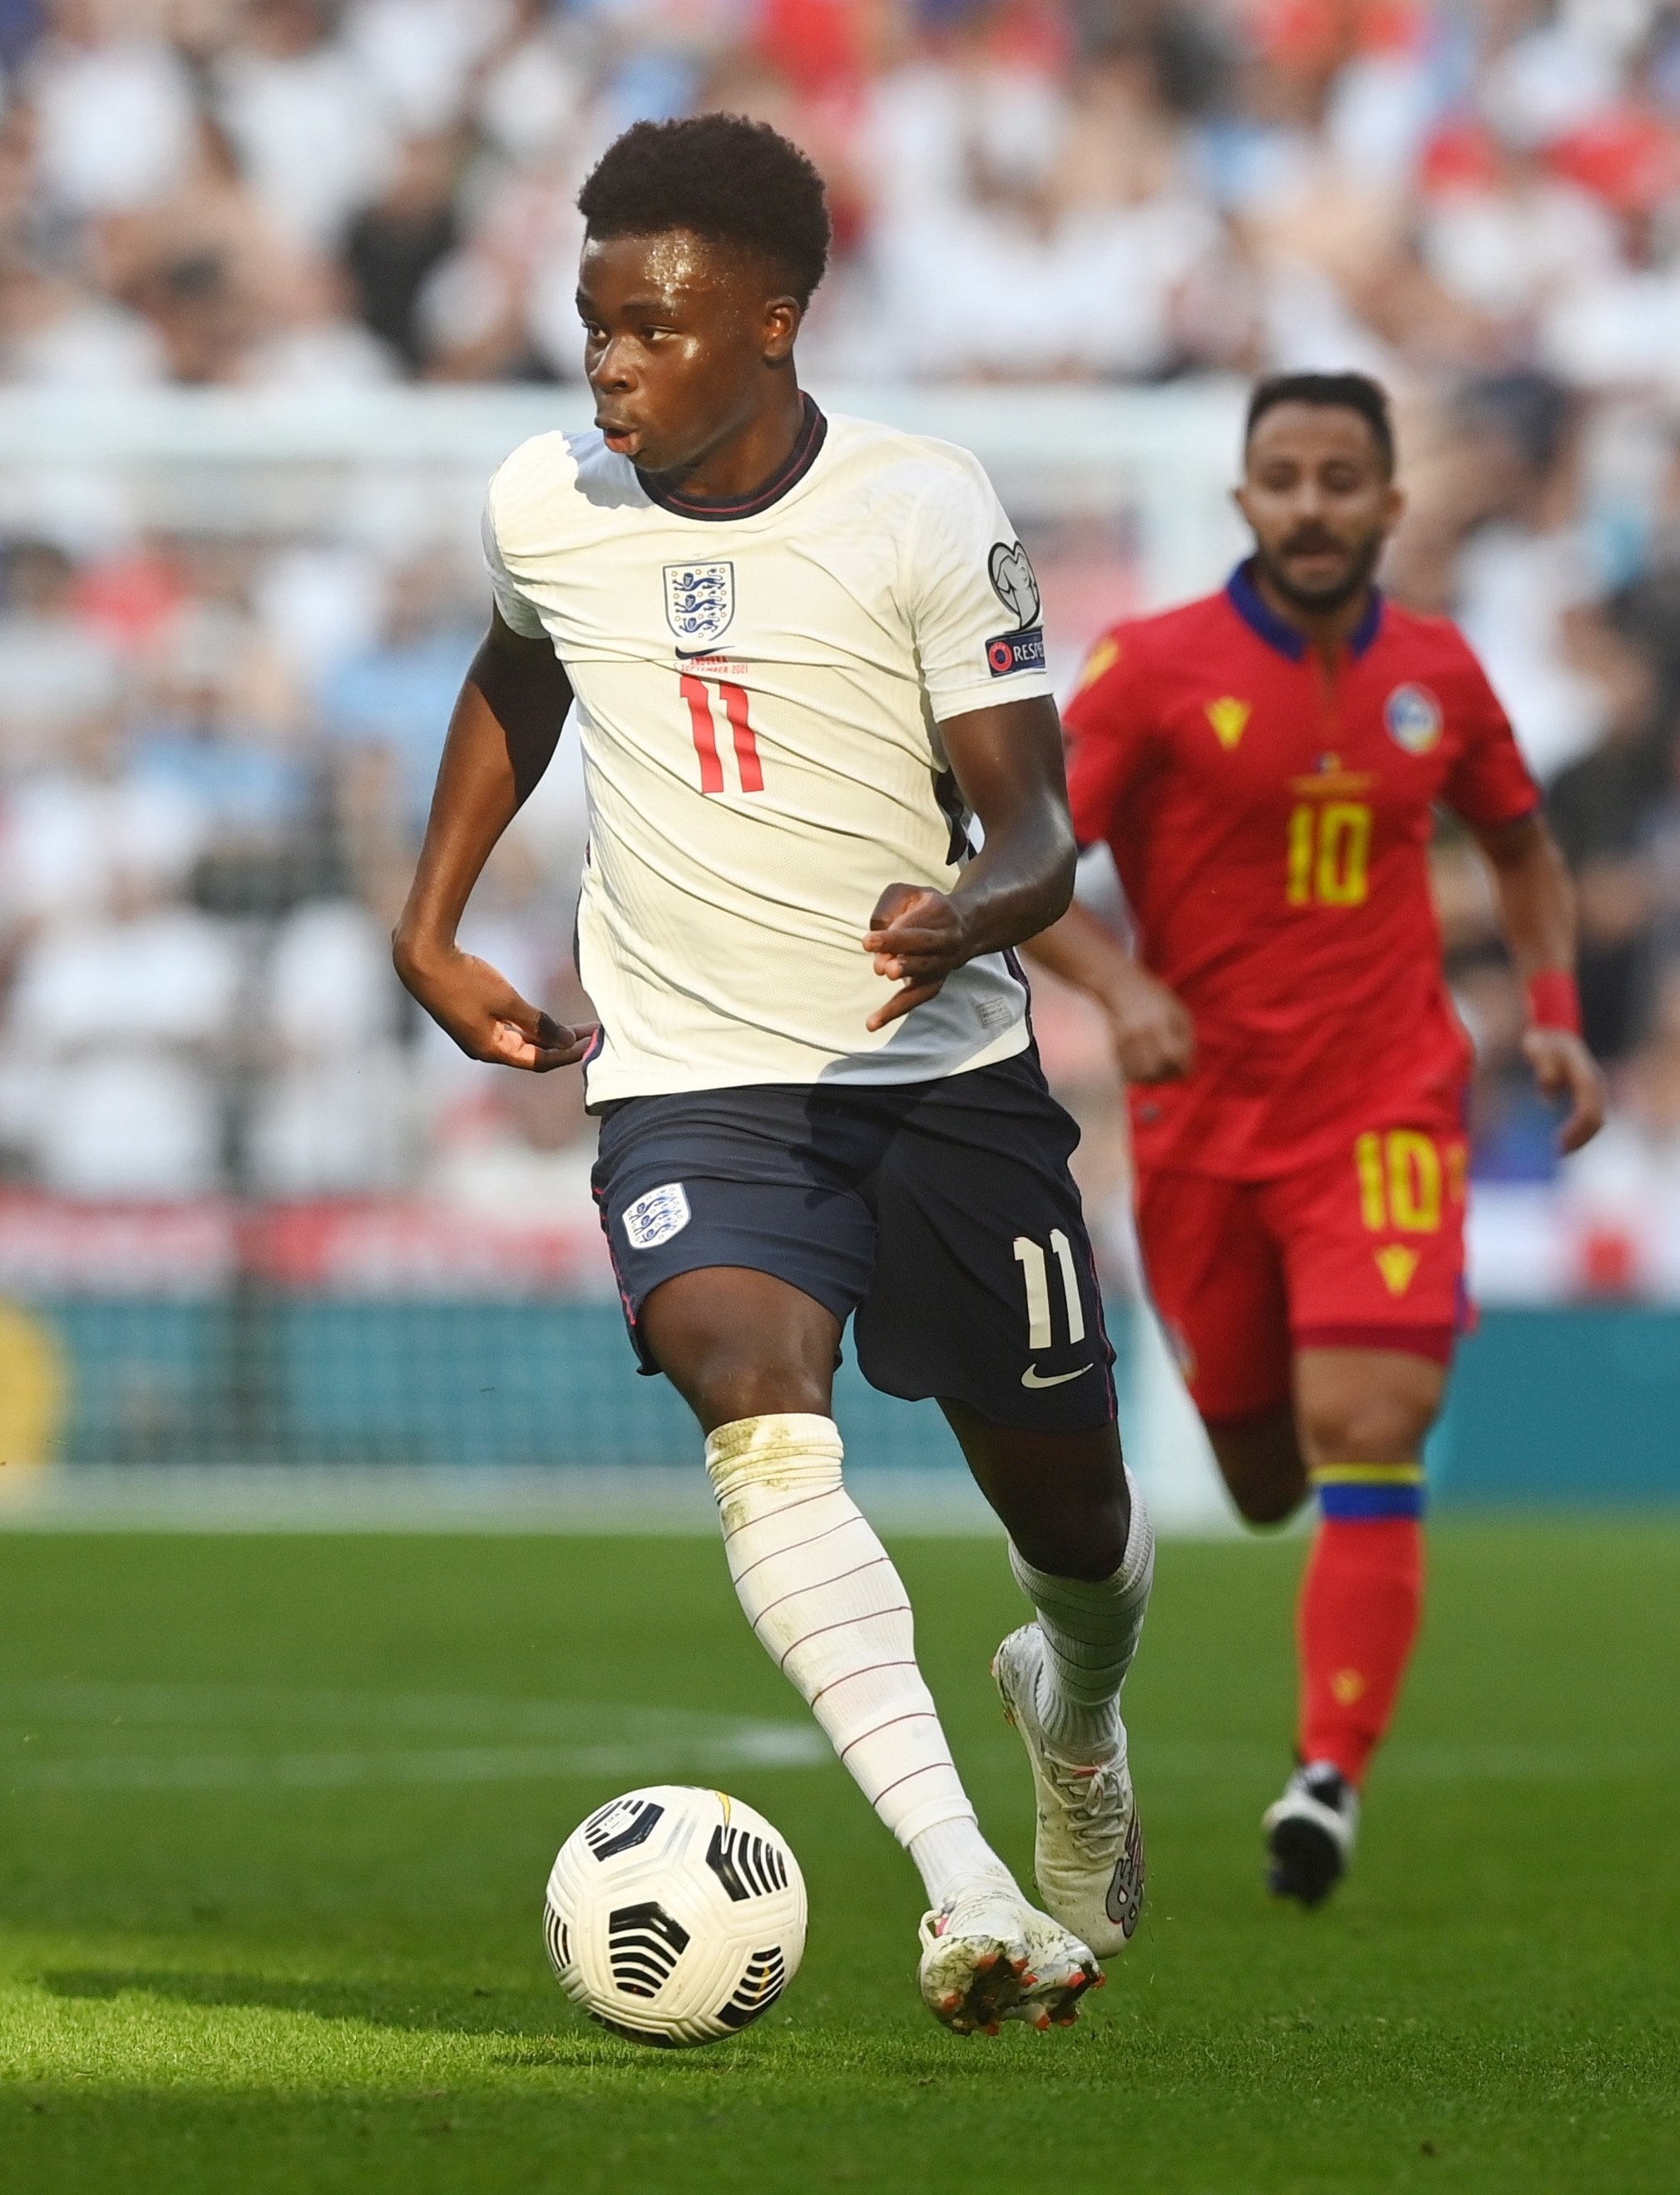 England's Bukayo Saka in action during a FIFA World Cup 2022 qualifier against Andorra in London, England, Sept. 5, 2021. (EPA Photo)